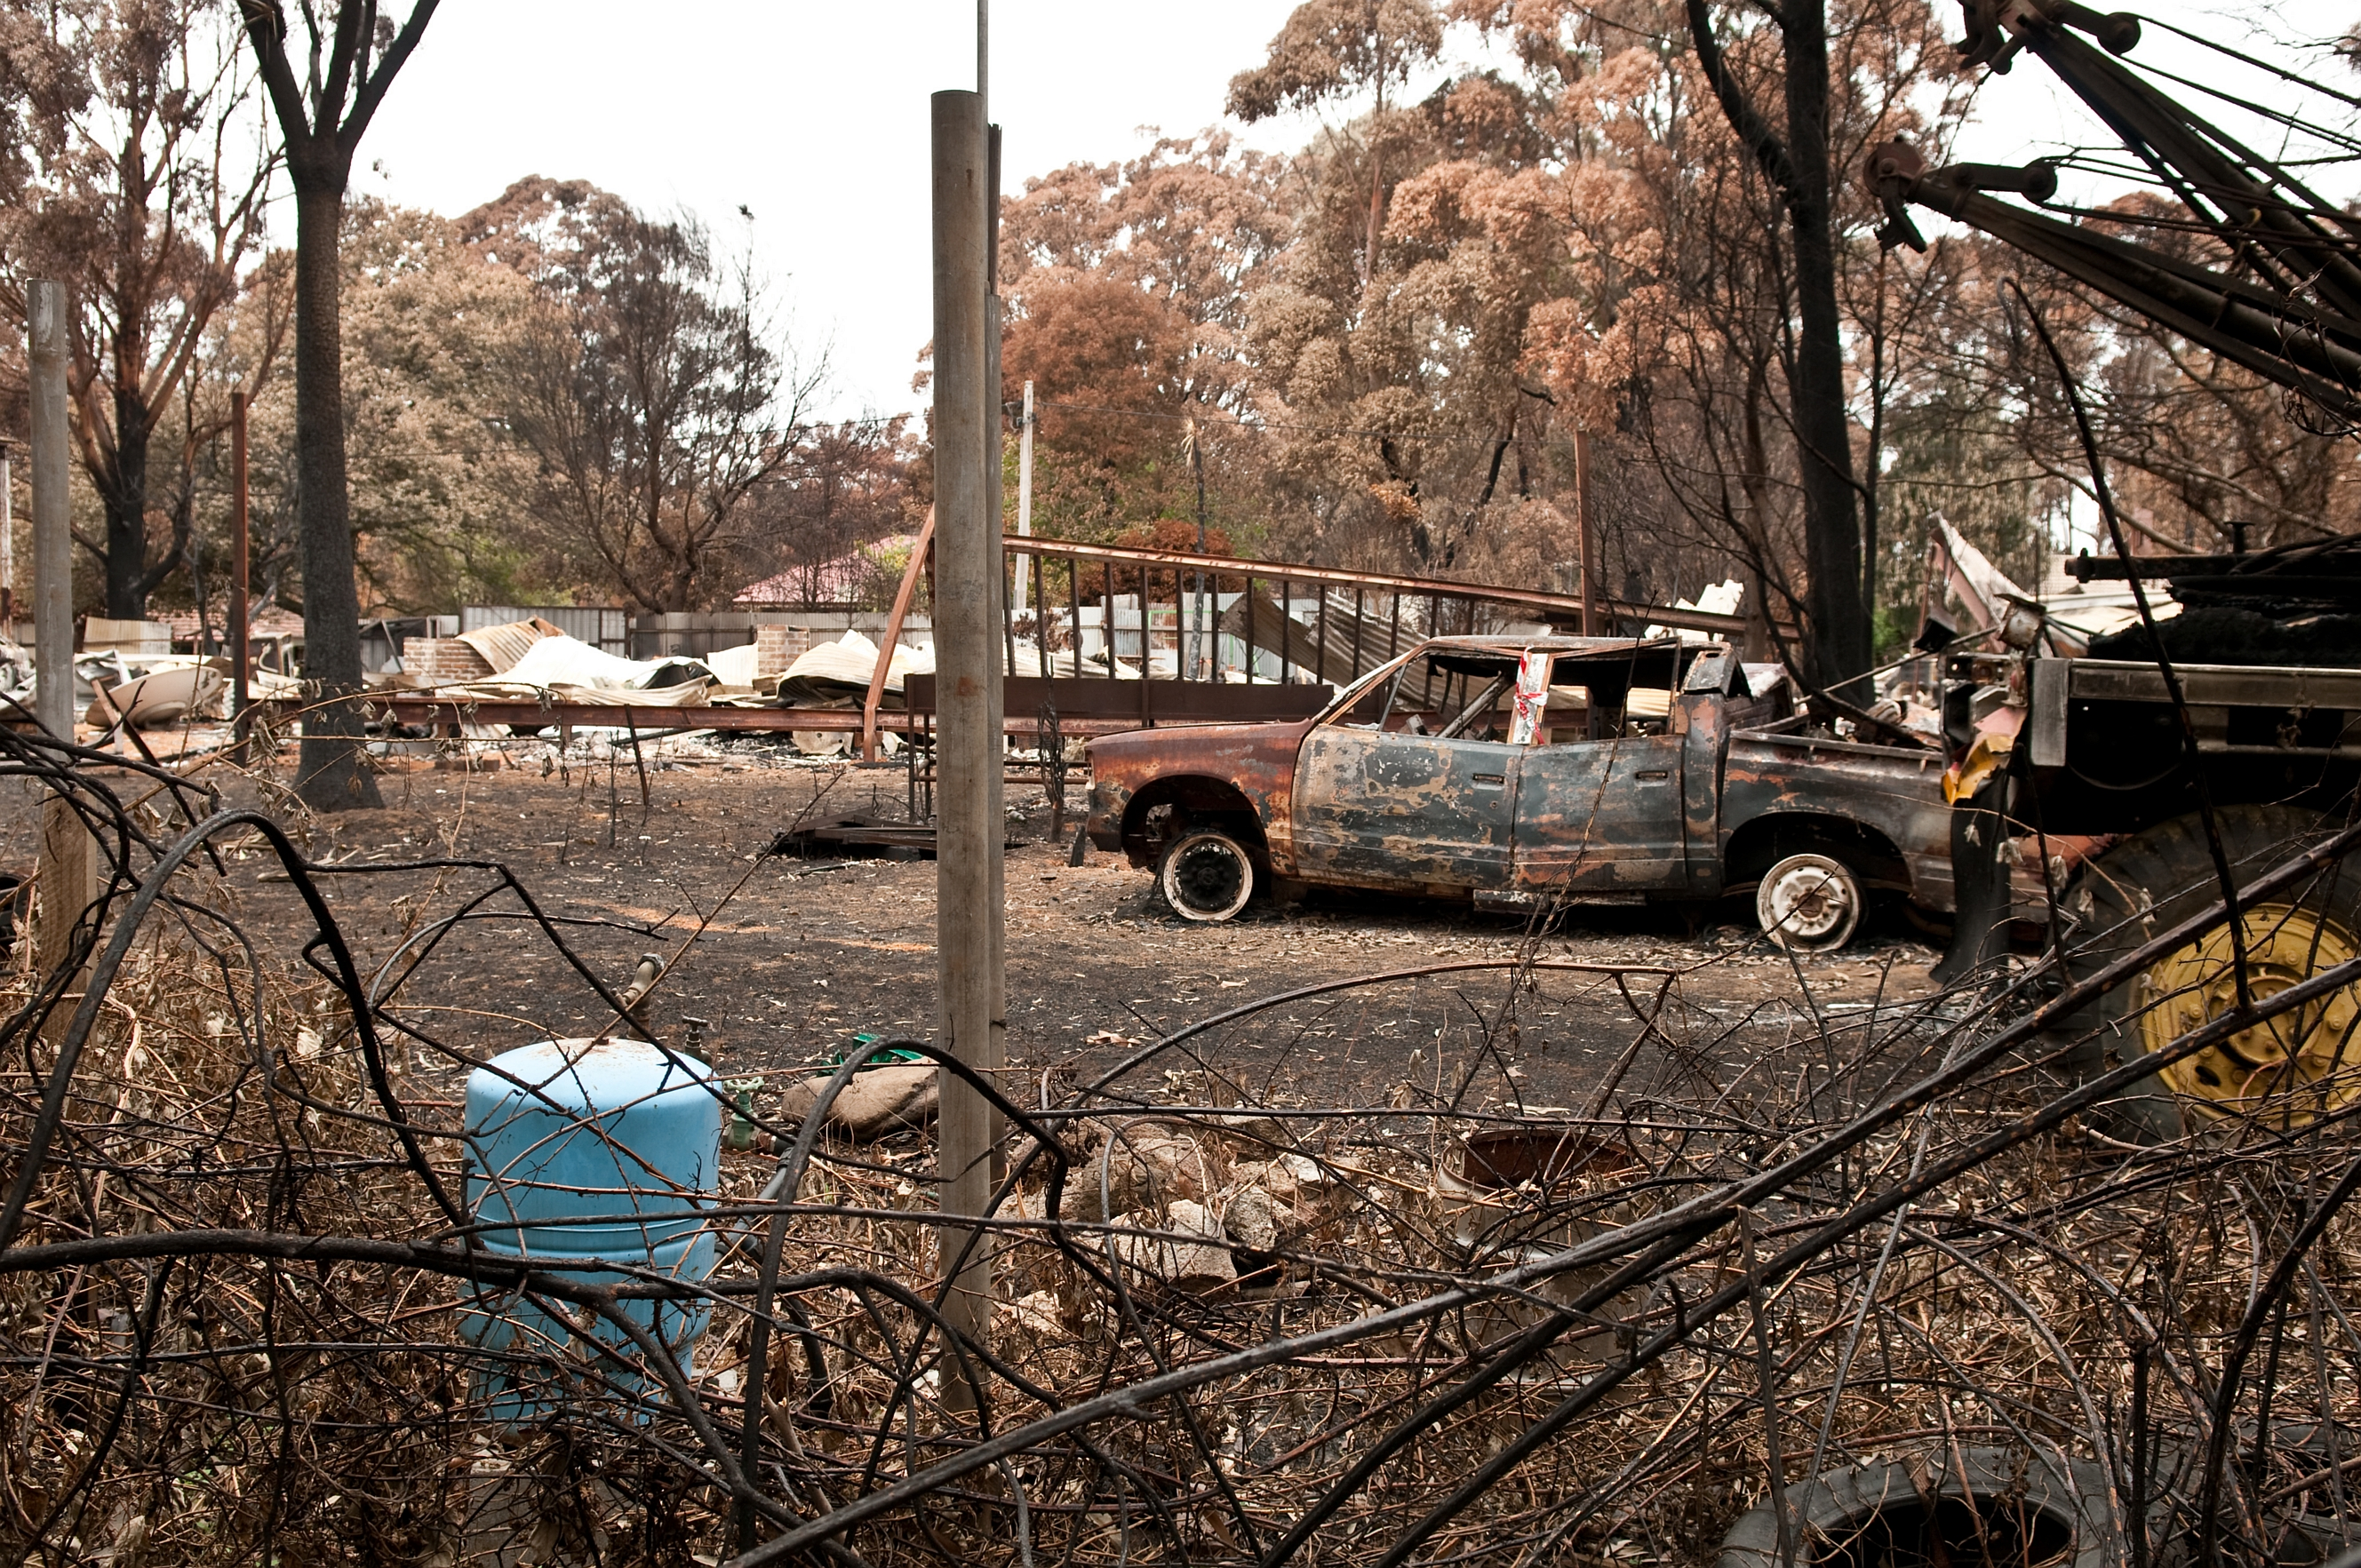 CSIRO_ScienceImage_10636_A_destroyed_property_at_Kinglake_after_the_Black_Saturday_bushfires